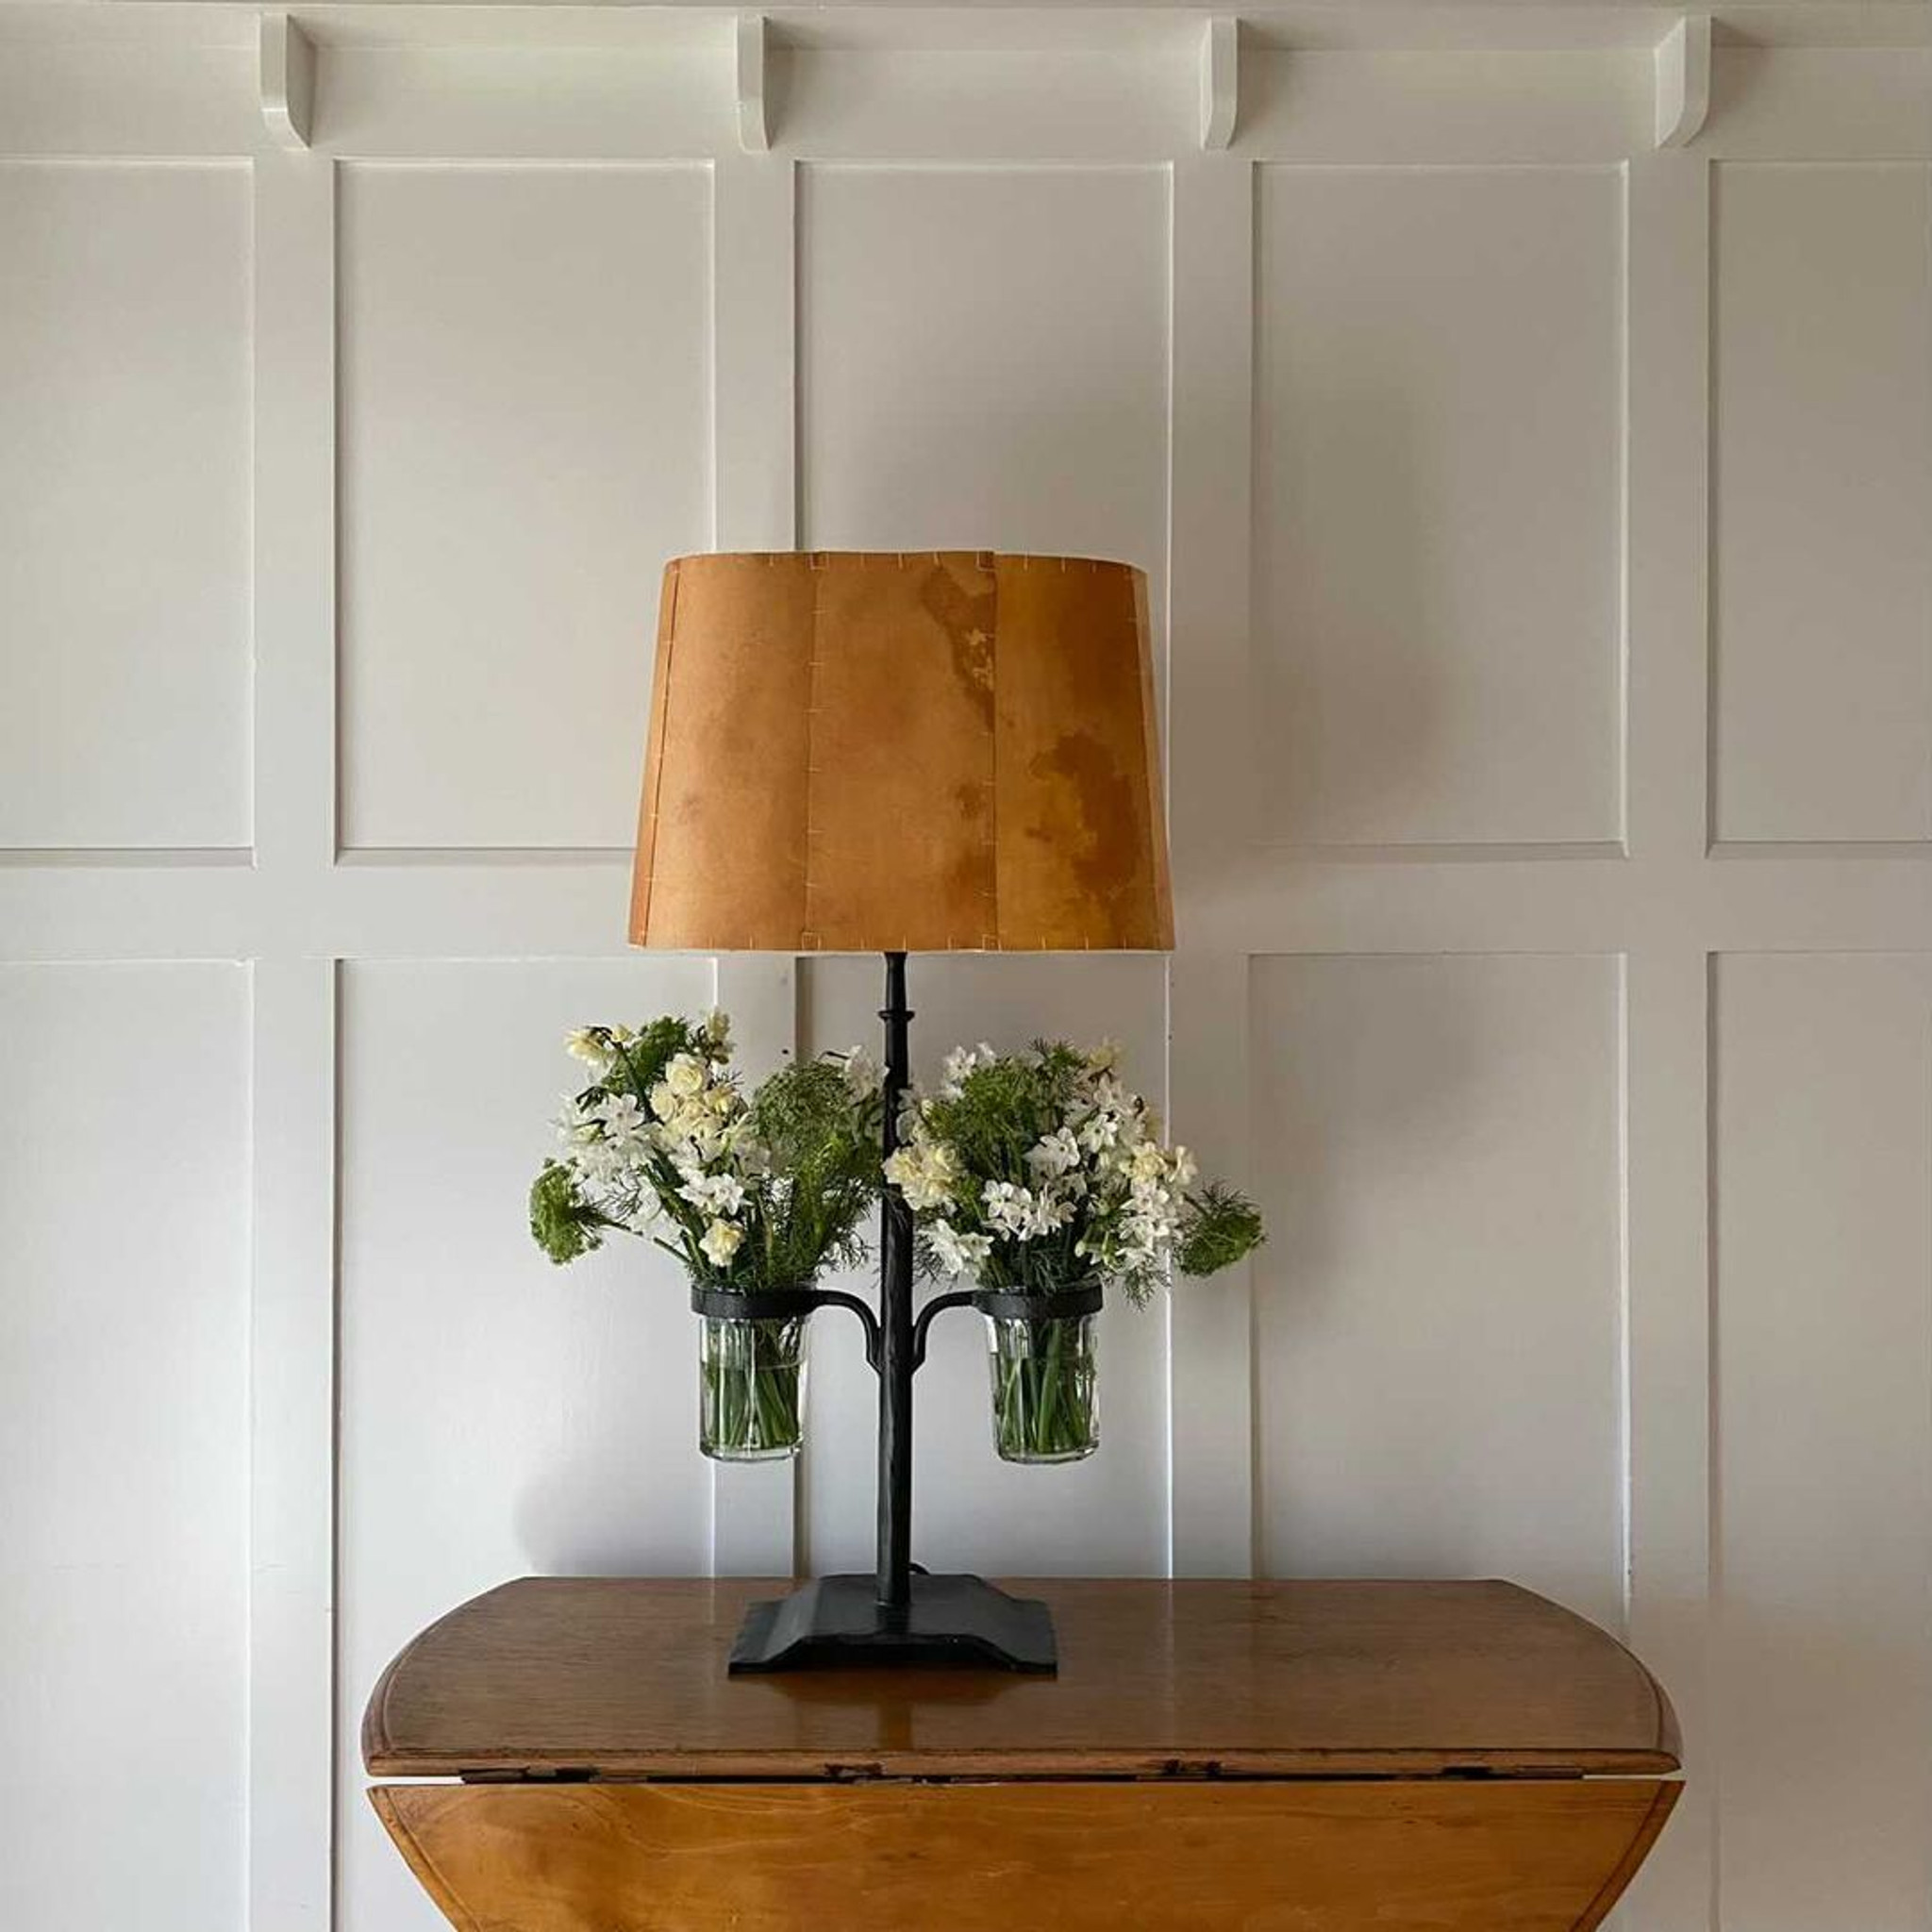 Jam jar table lamp, parchment, wrought iron, glass, vase, Andrew Gourlay